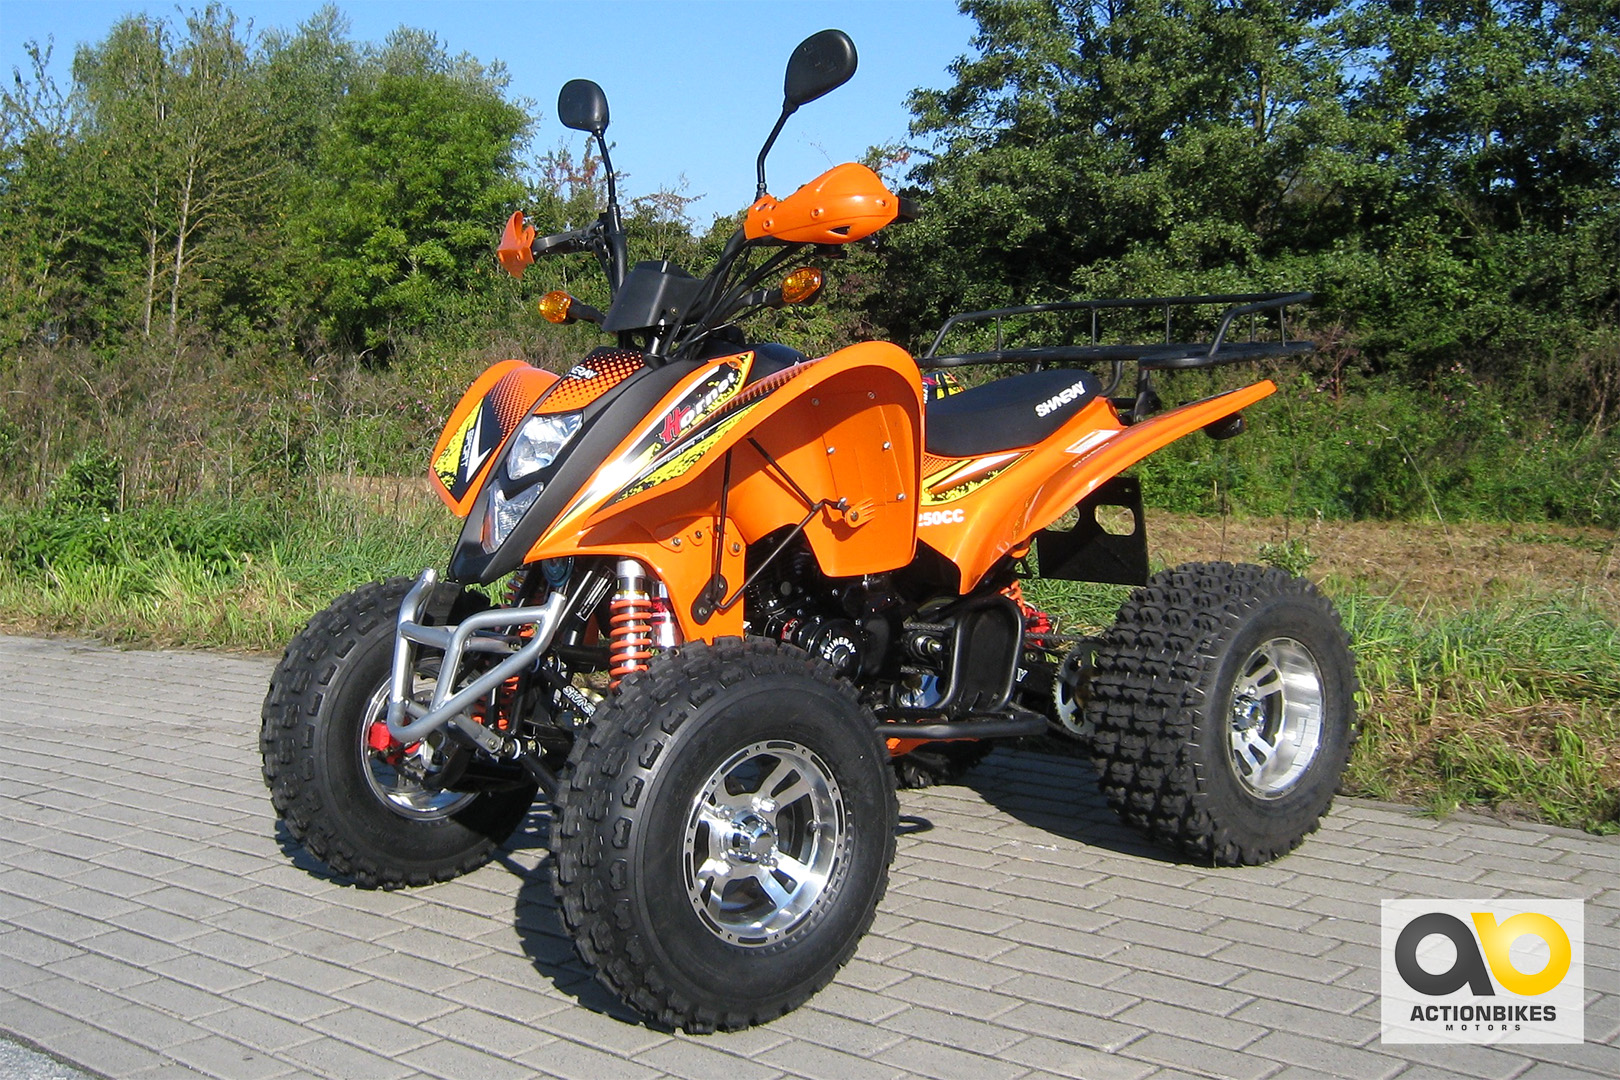 quad atv shineray xy250stxe plus with mot approval 250ccm 250cc. Black Bedroom Furniture Sets. Home Design Ideas